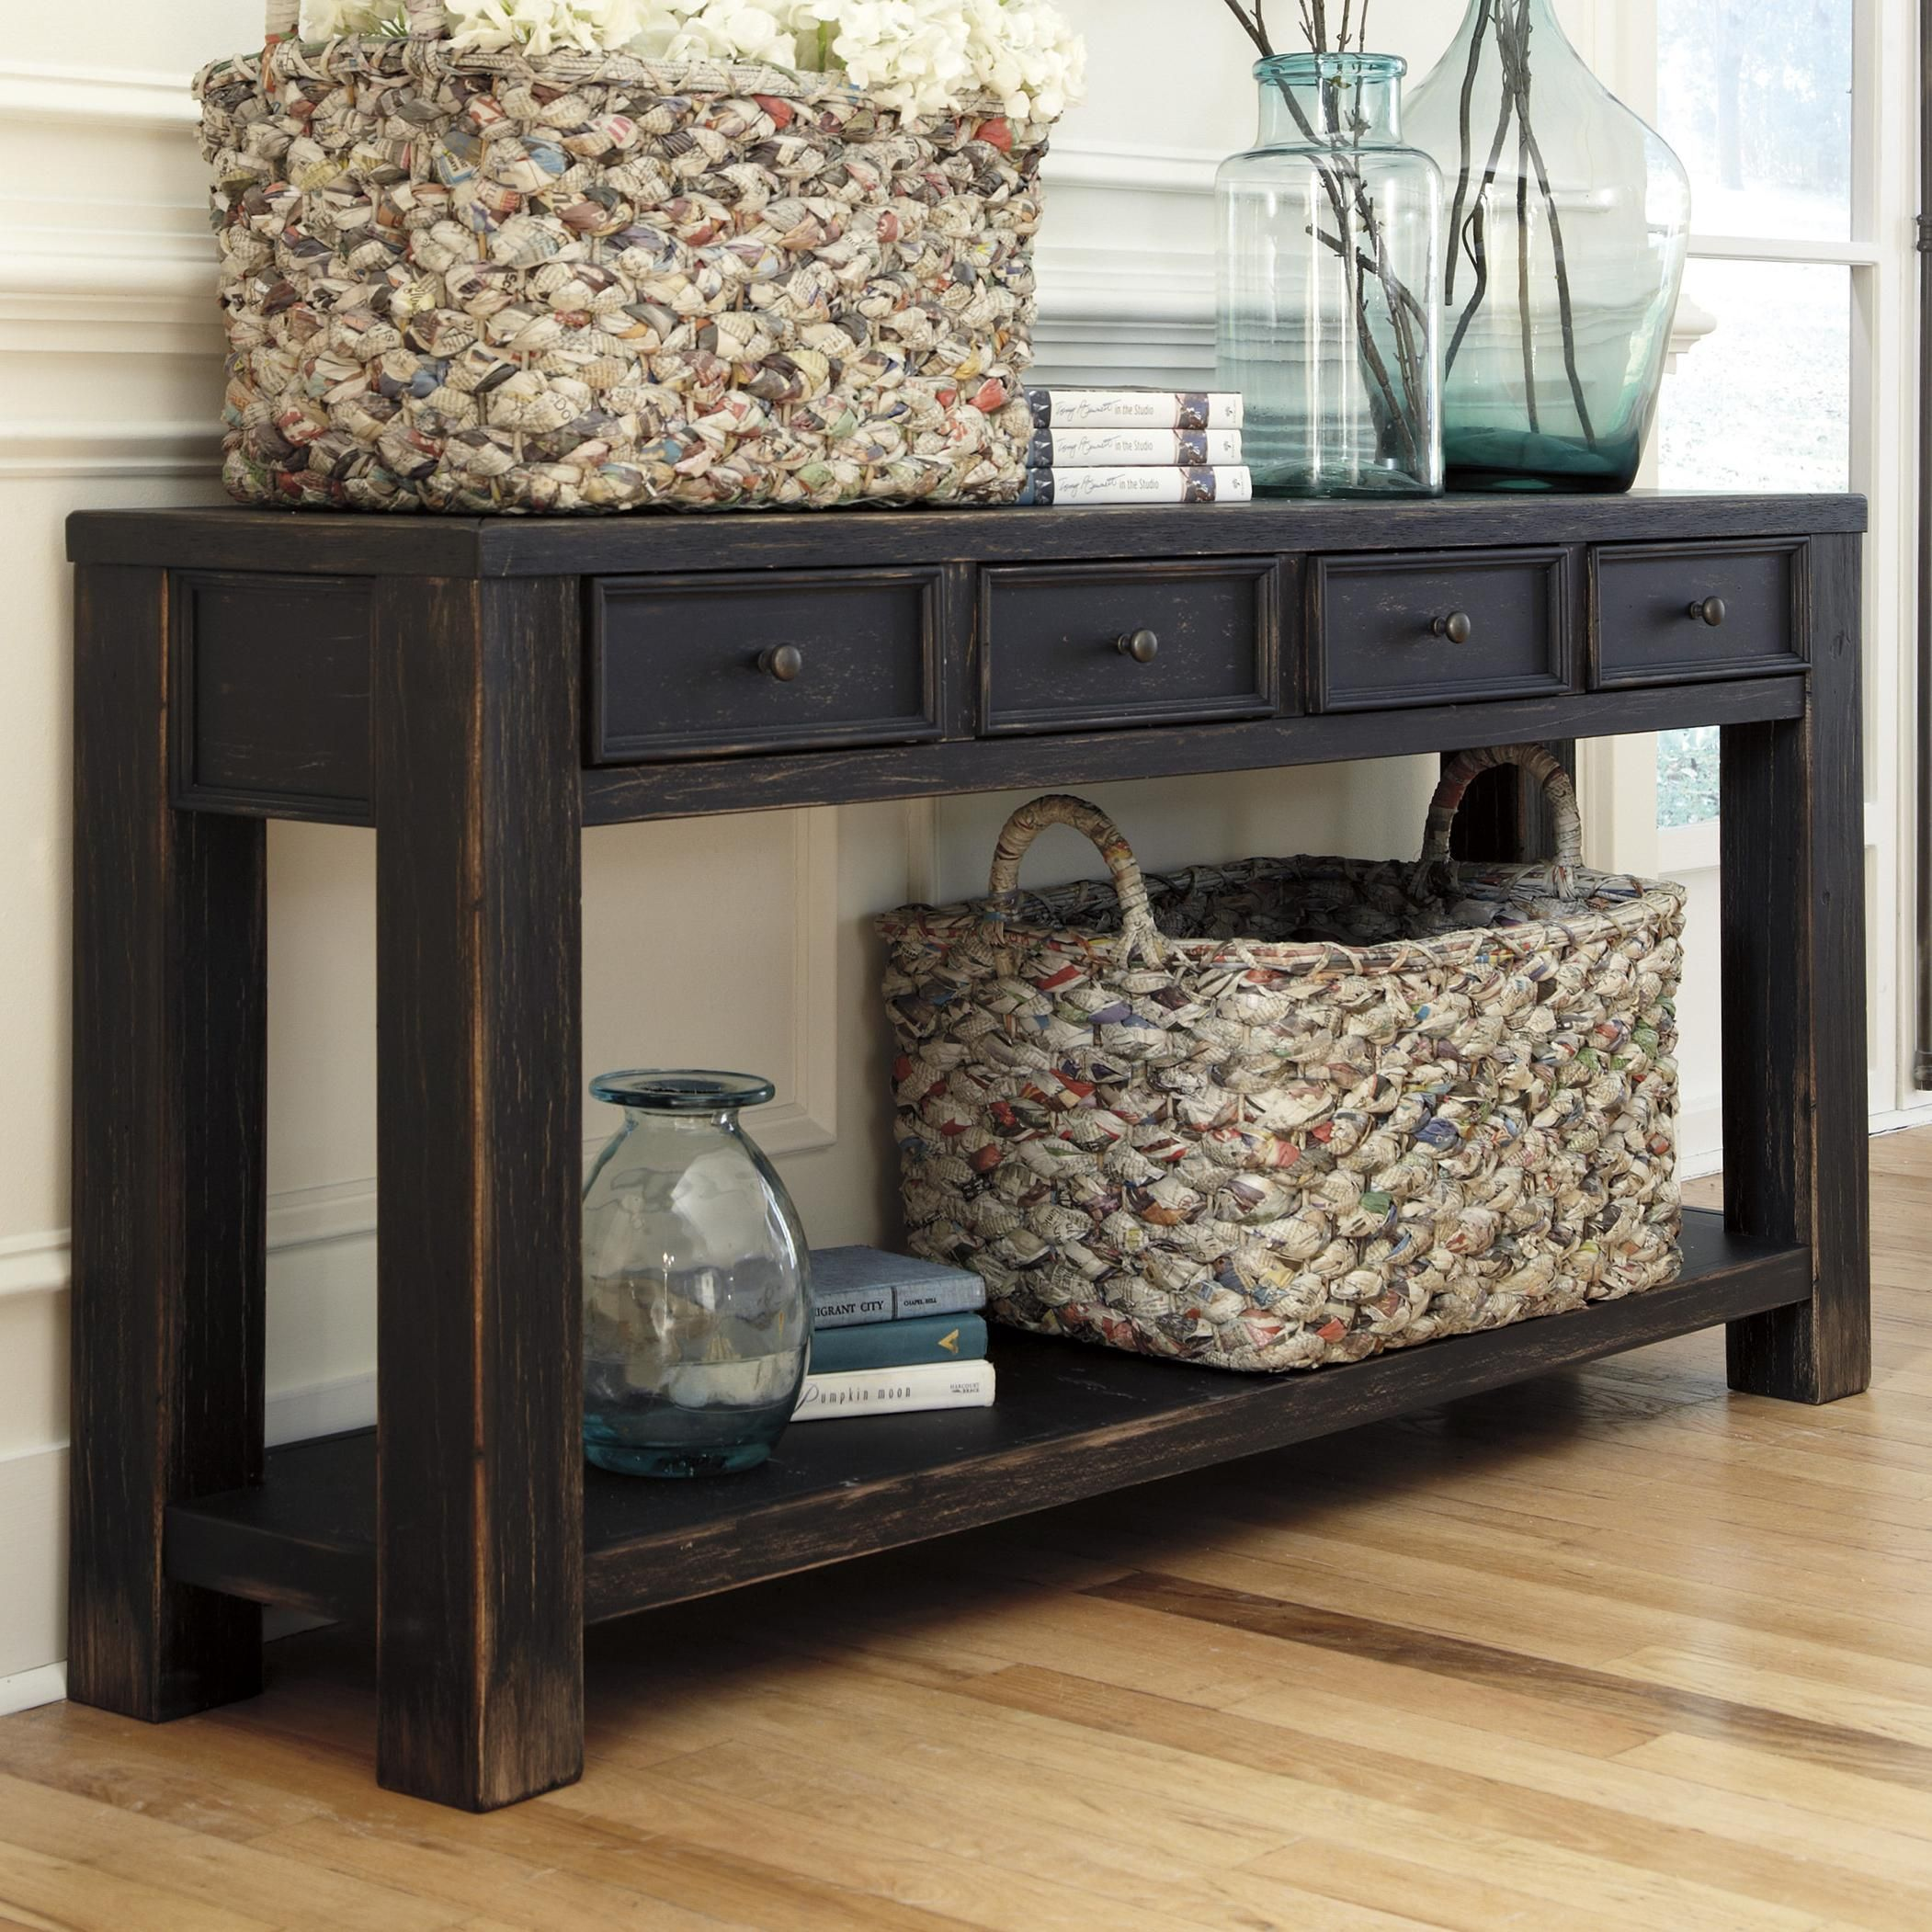 Gavelston Distressed Black Sofa Table With 4 Drawers Shelf By